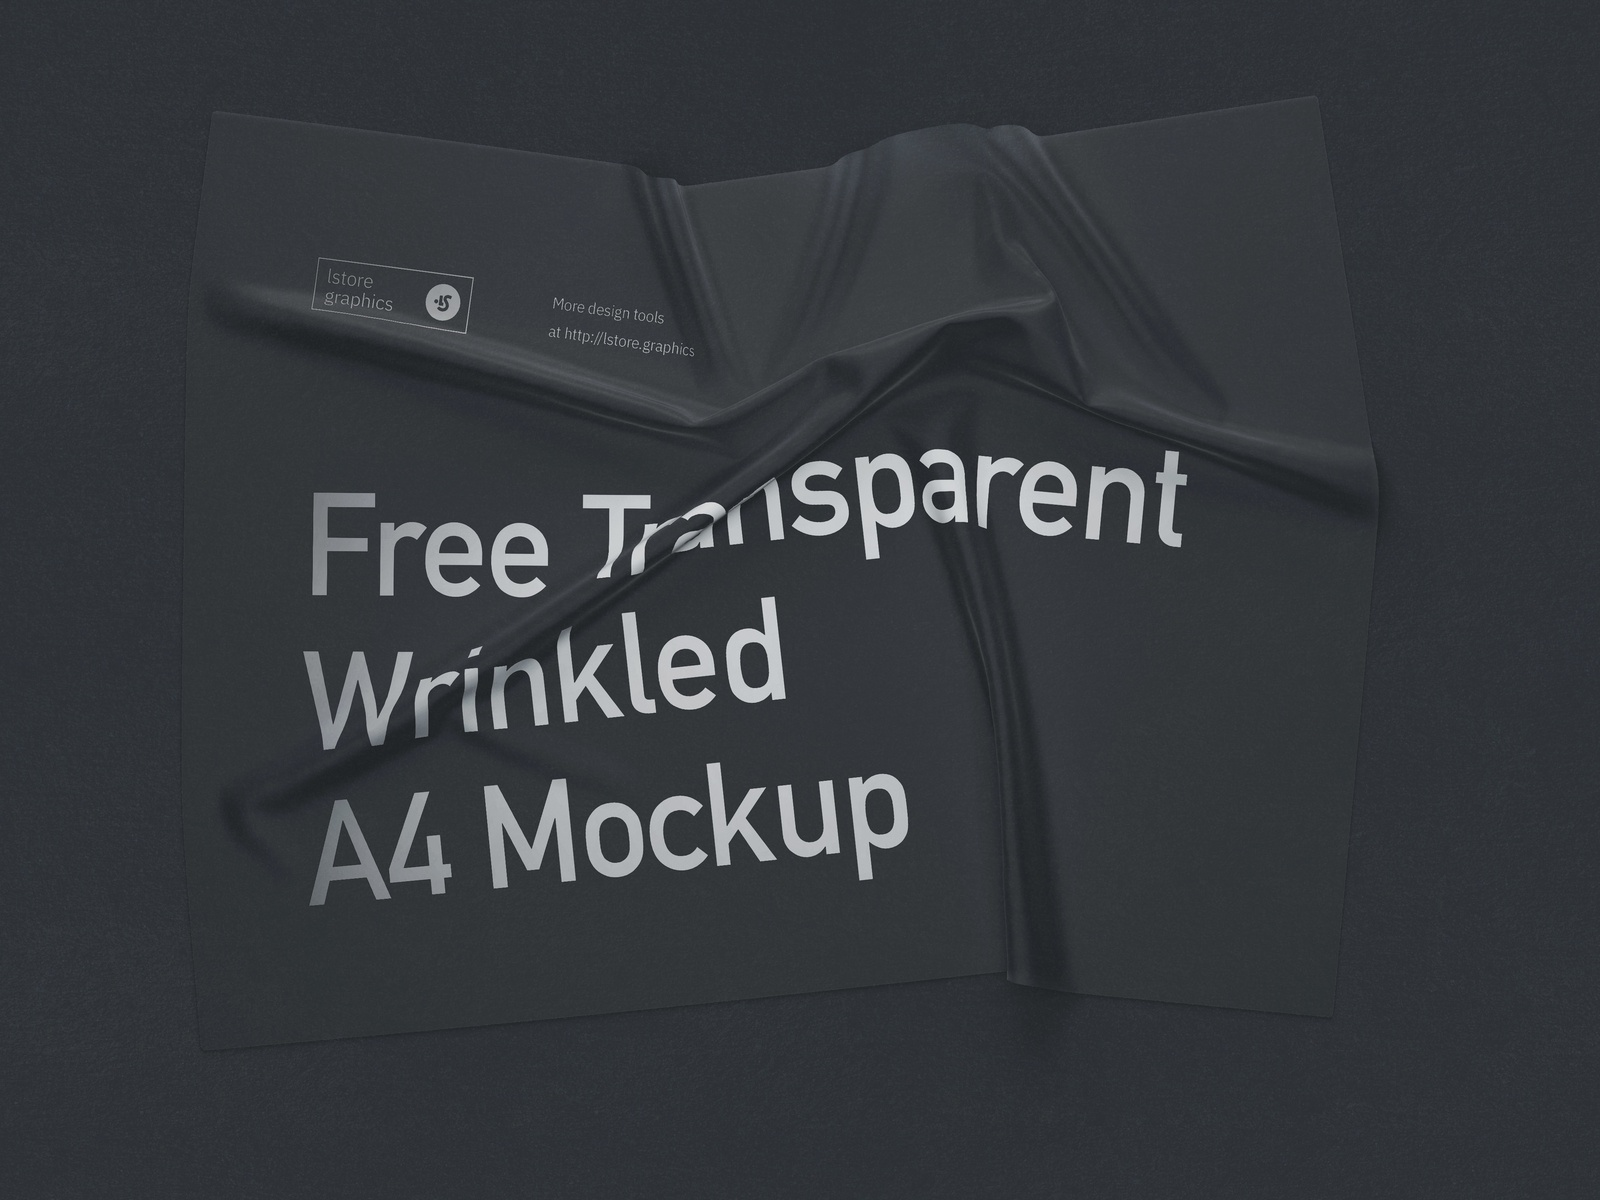 Free Transparent Wrinkled A4 Mockup a4 fabric psd ui mock-up freebie download free mockup